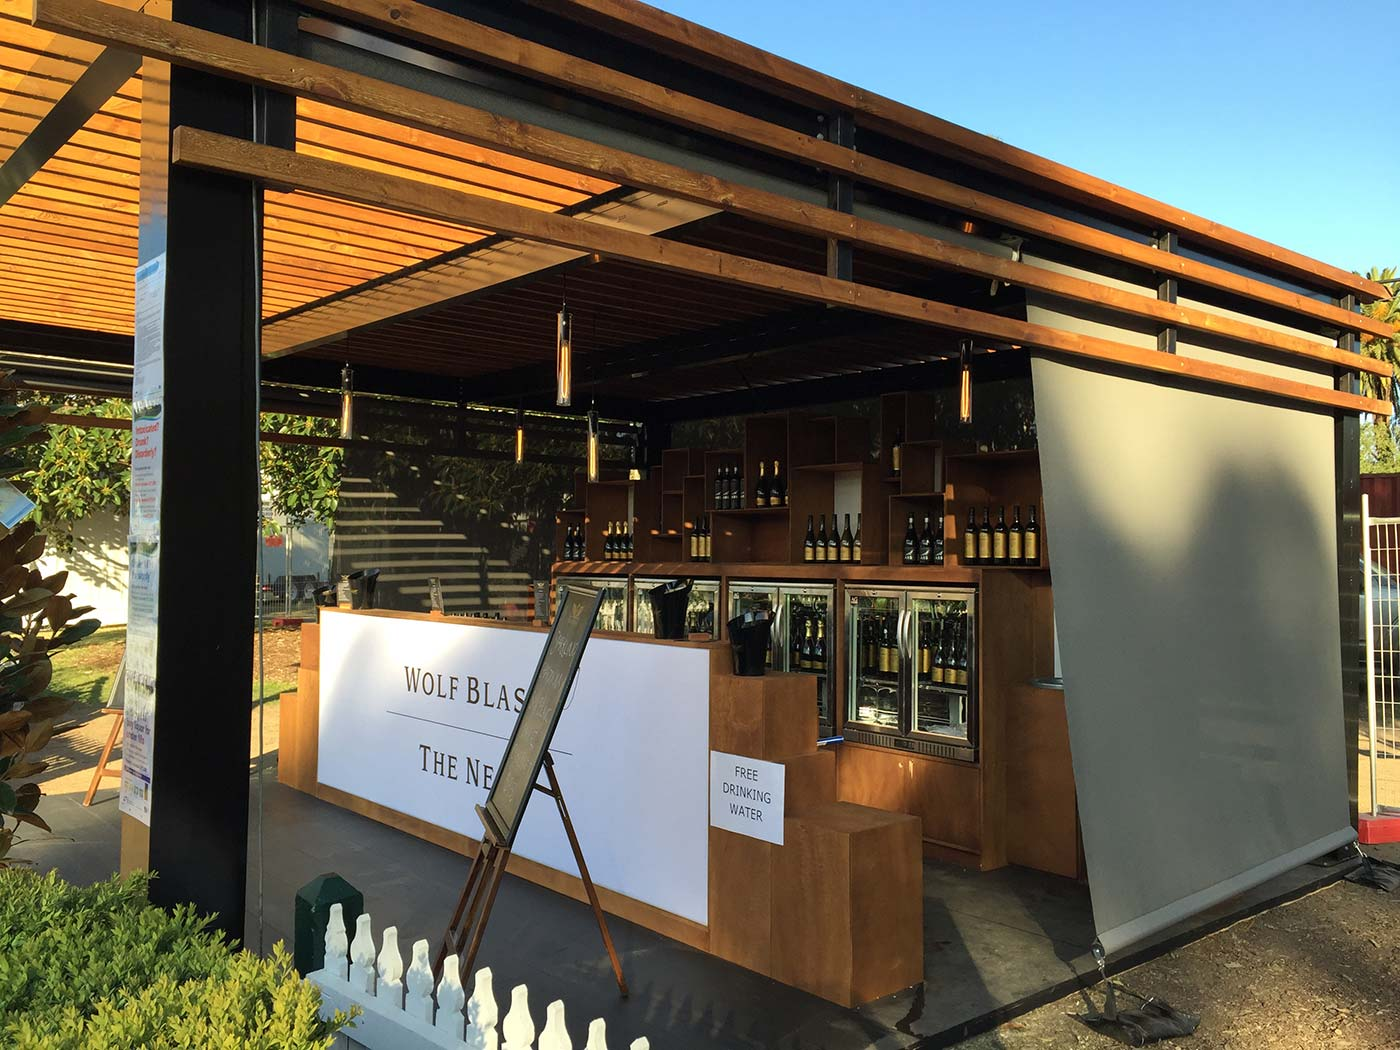 Wolf-Blass-The-Nest-Shipping-Container-Bar-5